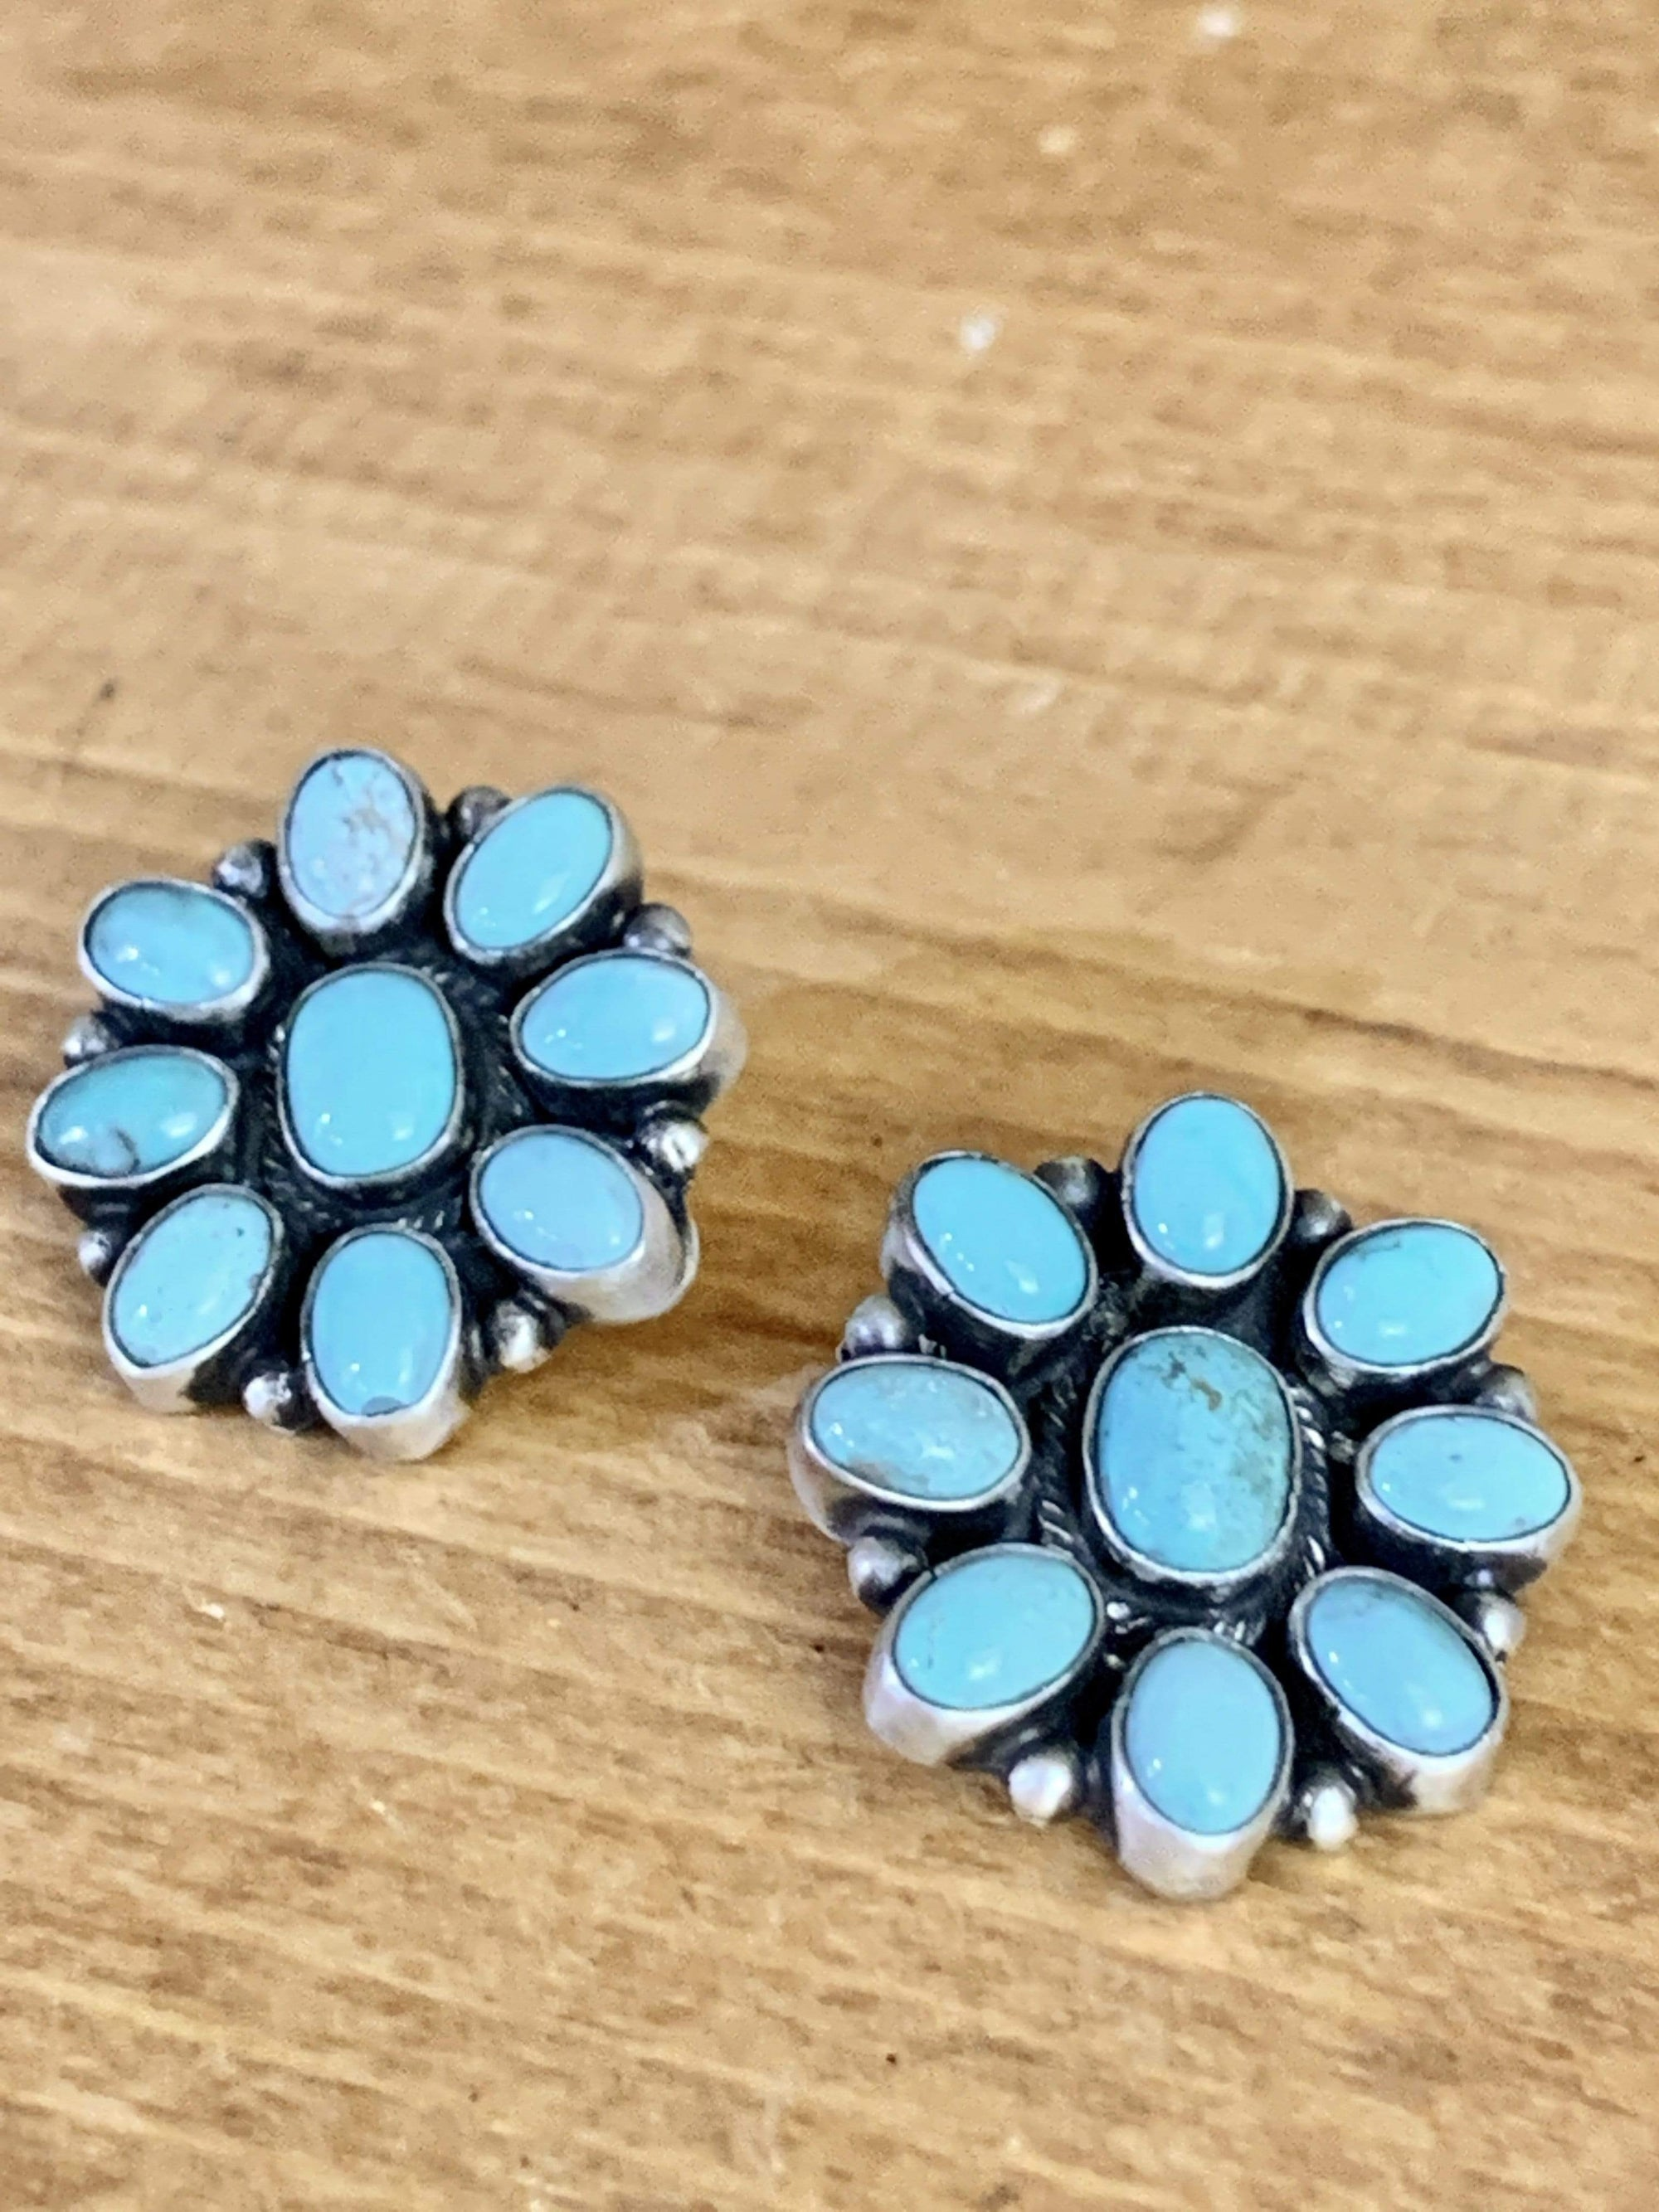 Accessorize In Style Sterling Earrings Shades of Blue Sterling & Turquoise Earrings